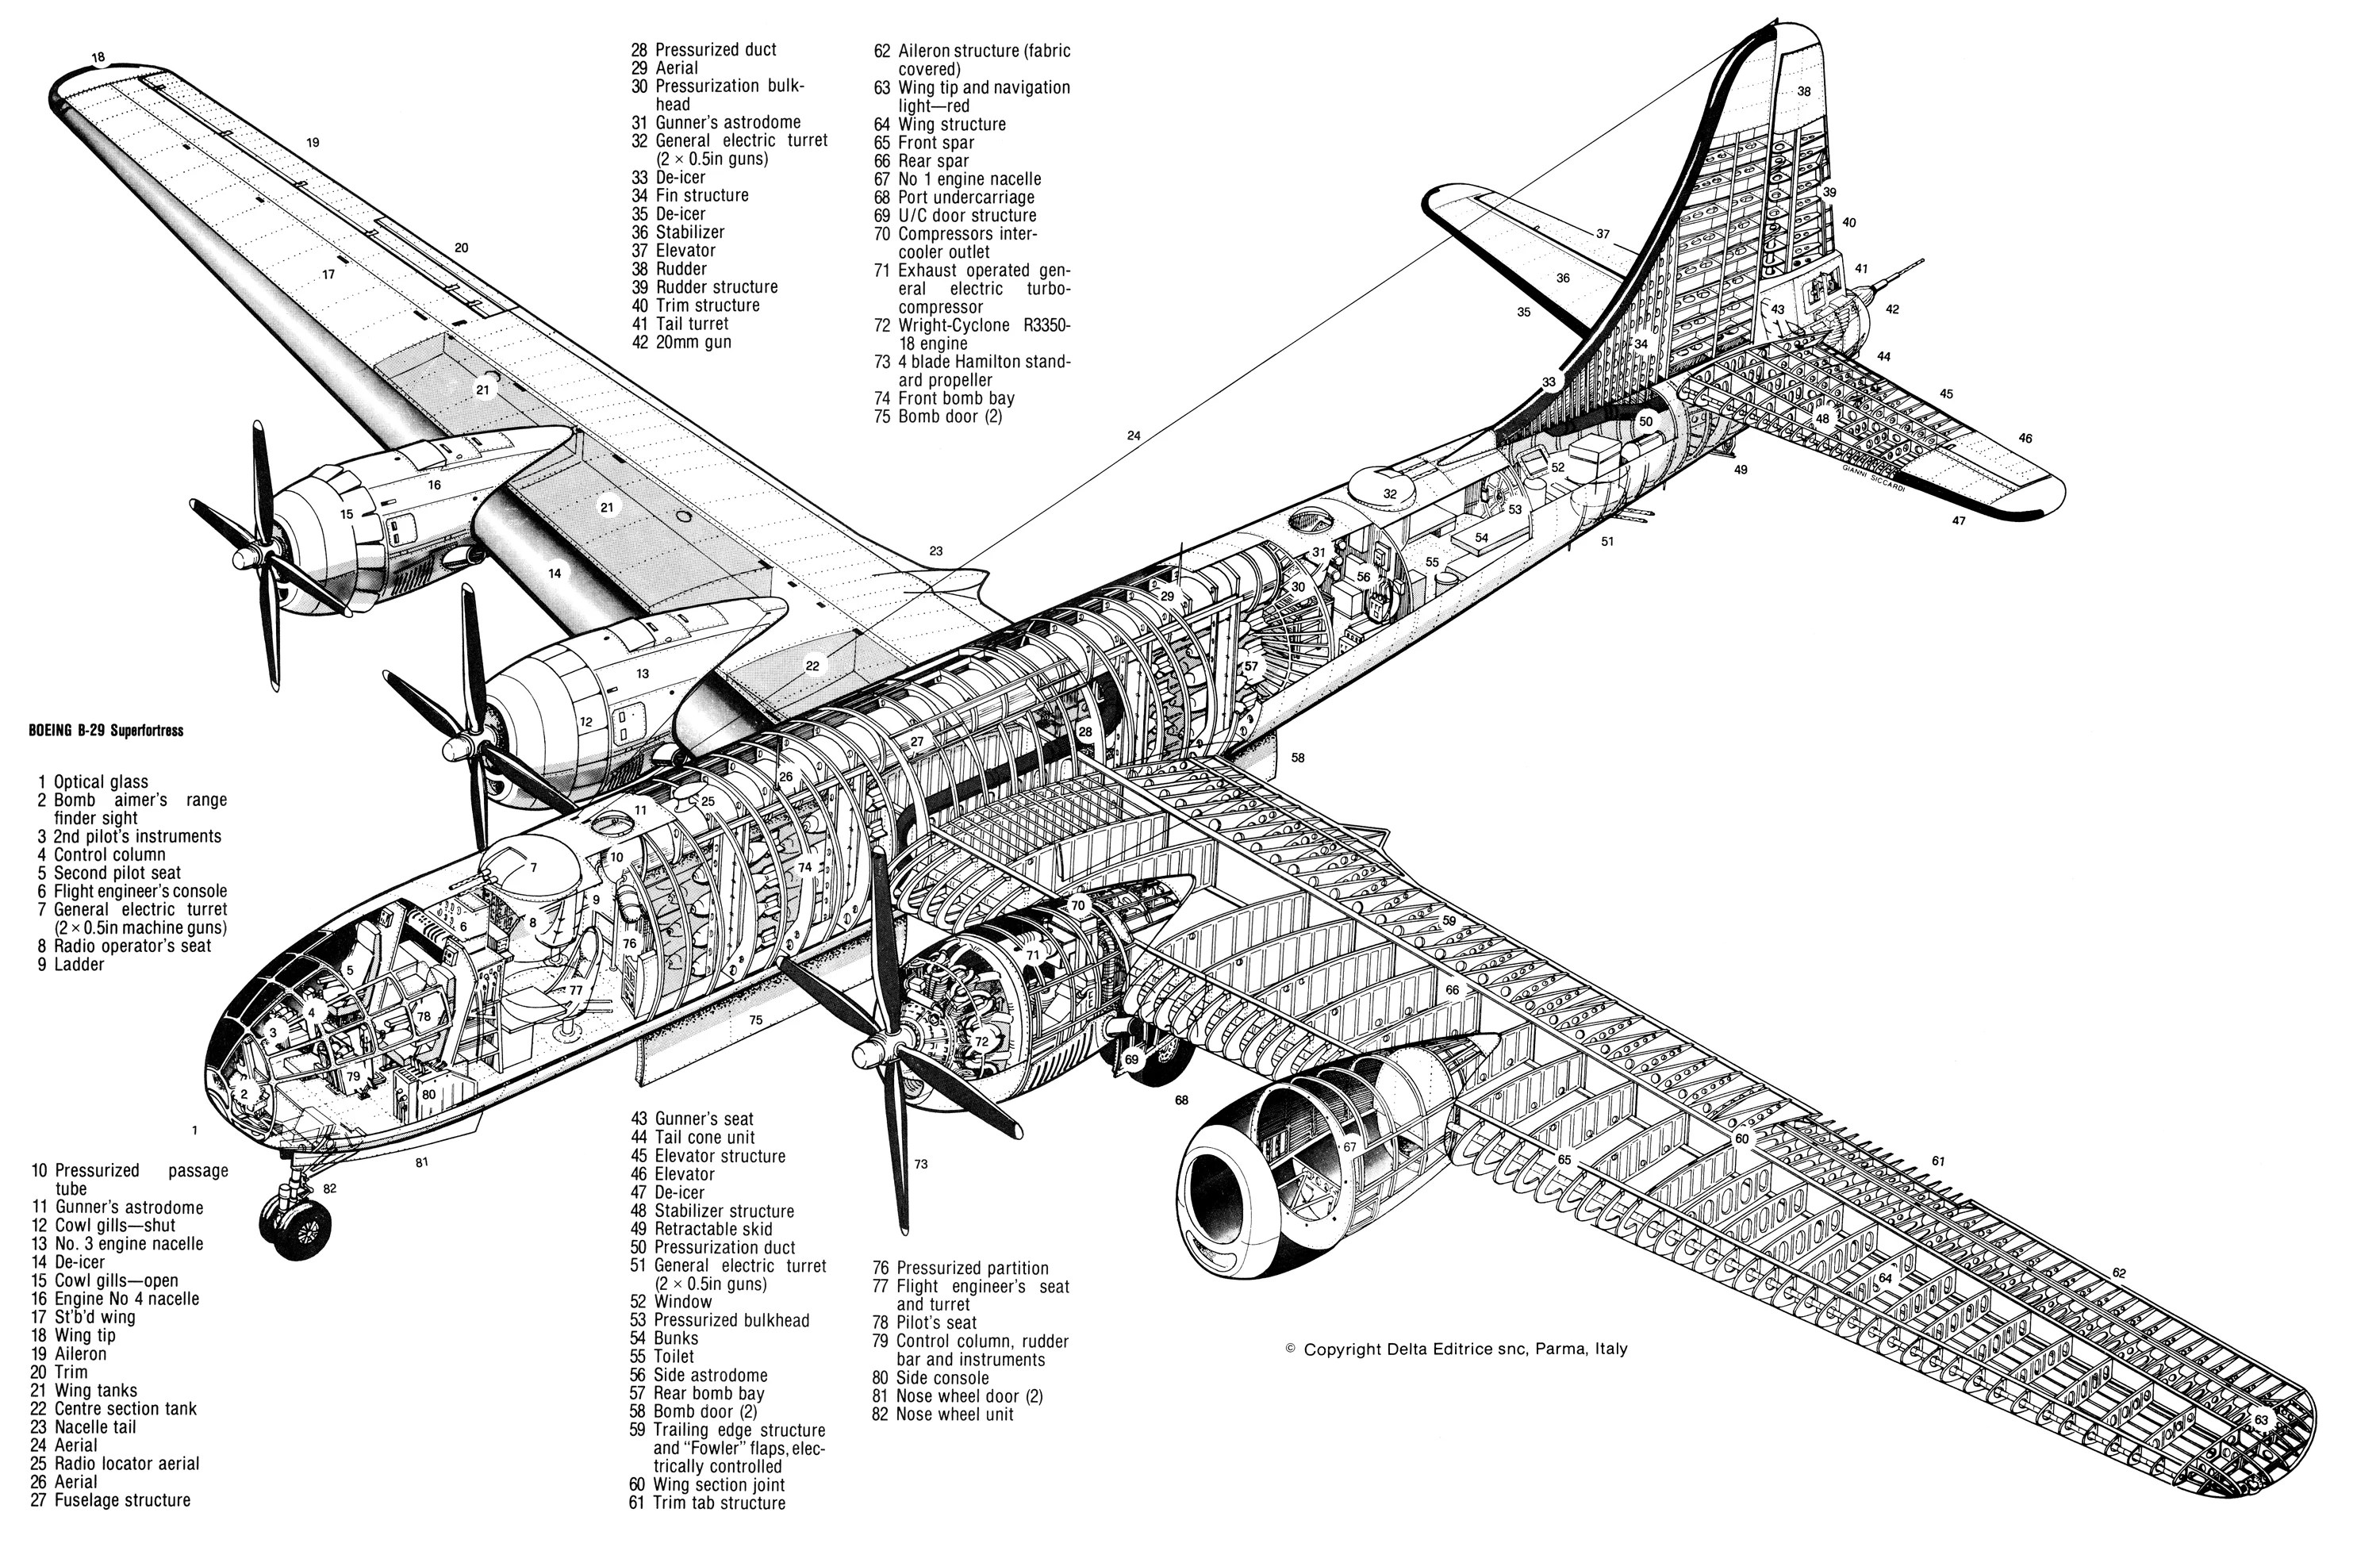 Paul Tibbits Personally Selected The B 29 That Was To Be